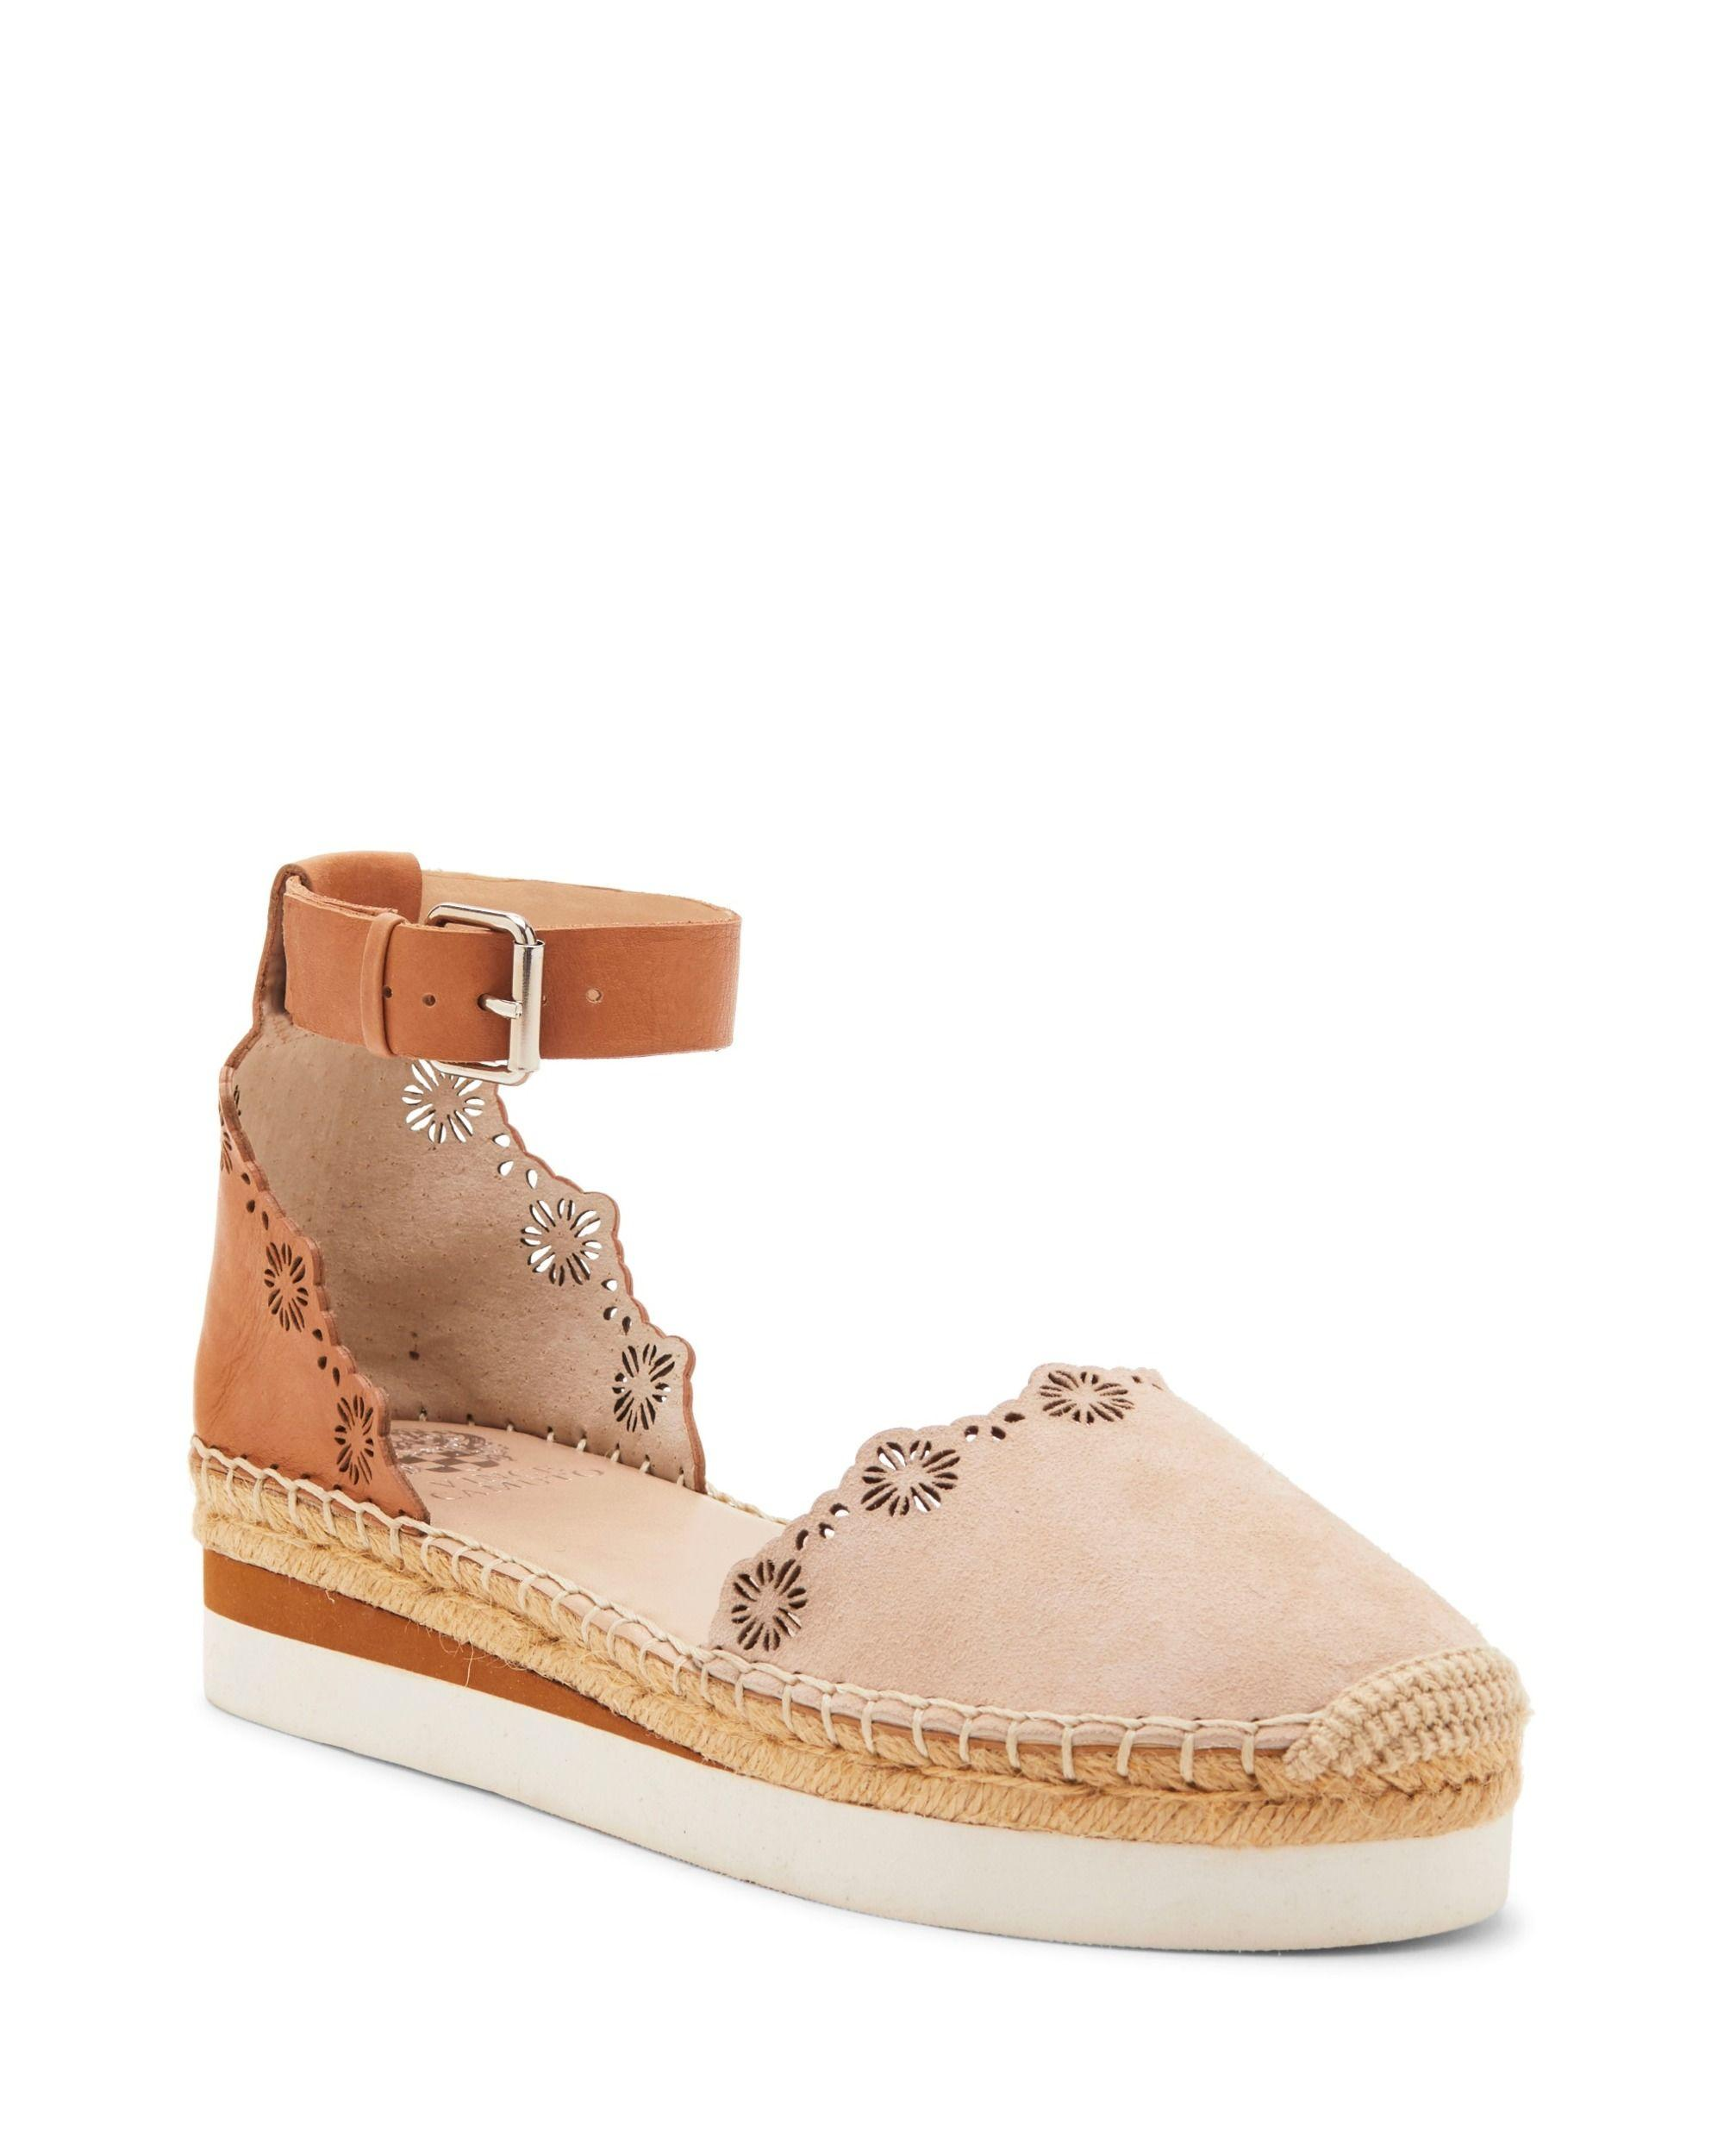 cfbe8e6e83c Lyst - Vince Camuto Breshan Espadrille Flat in Brown - Save 1%